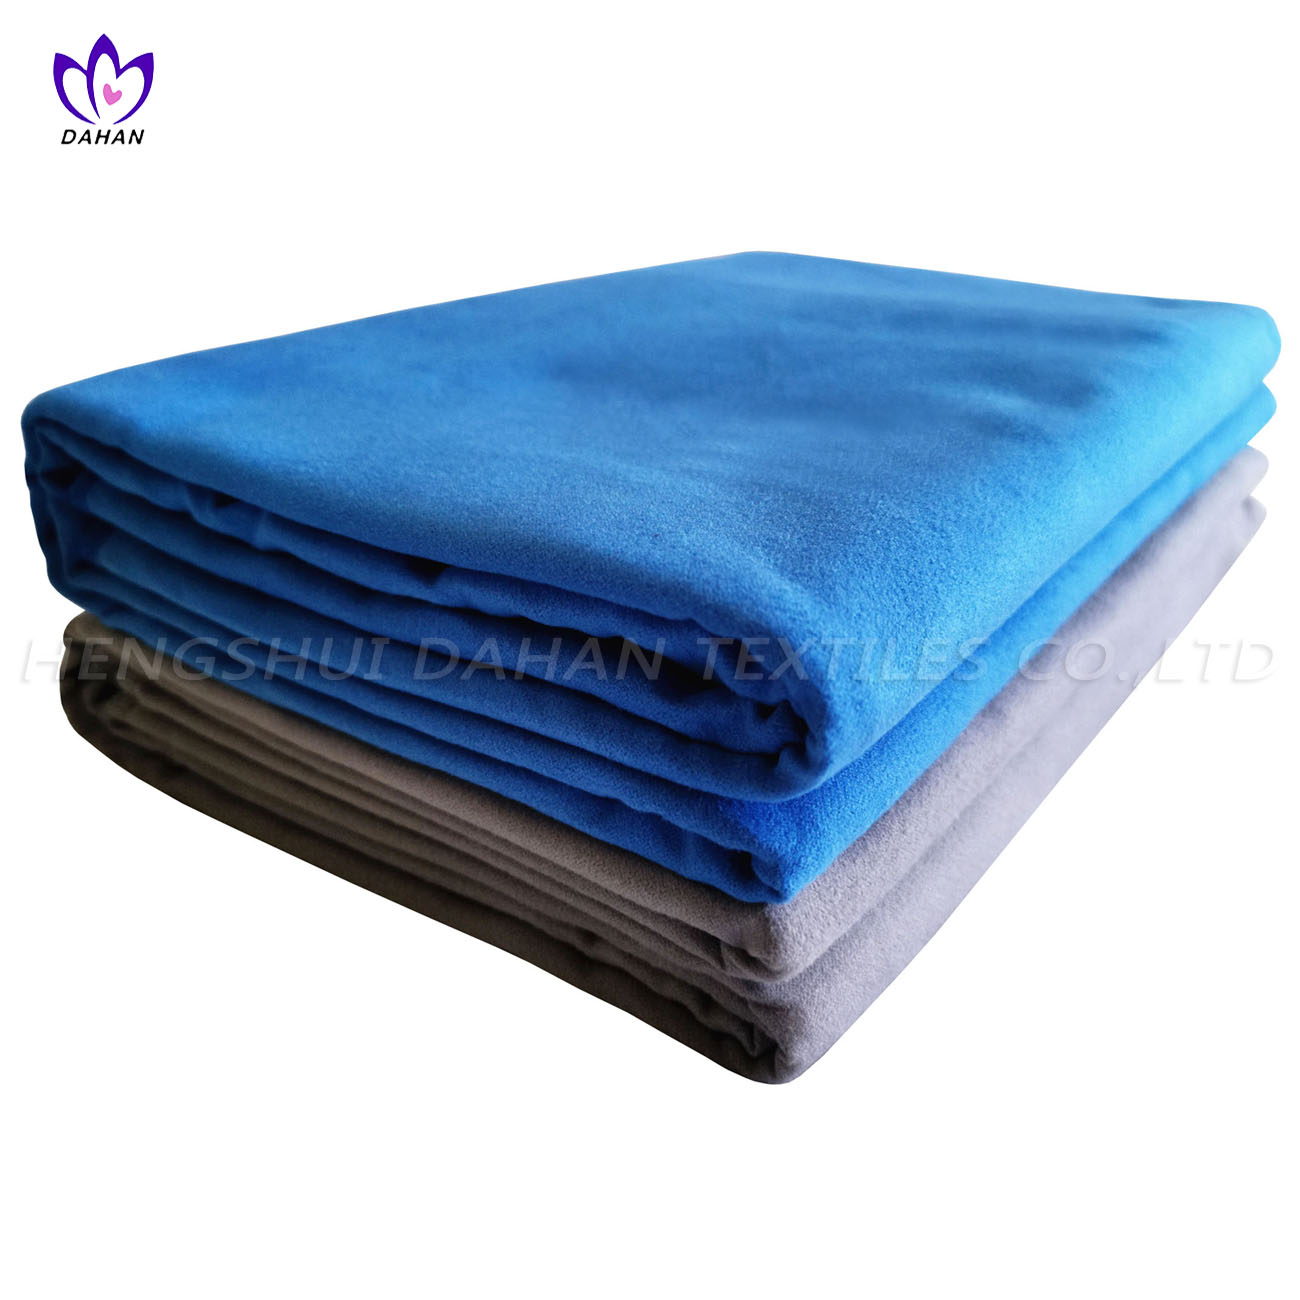 MS38 Solid color microfiber suede towel.